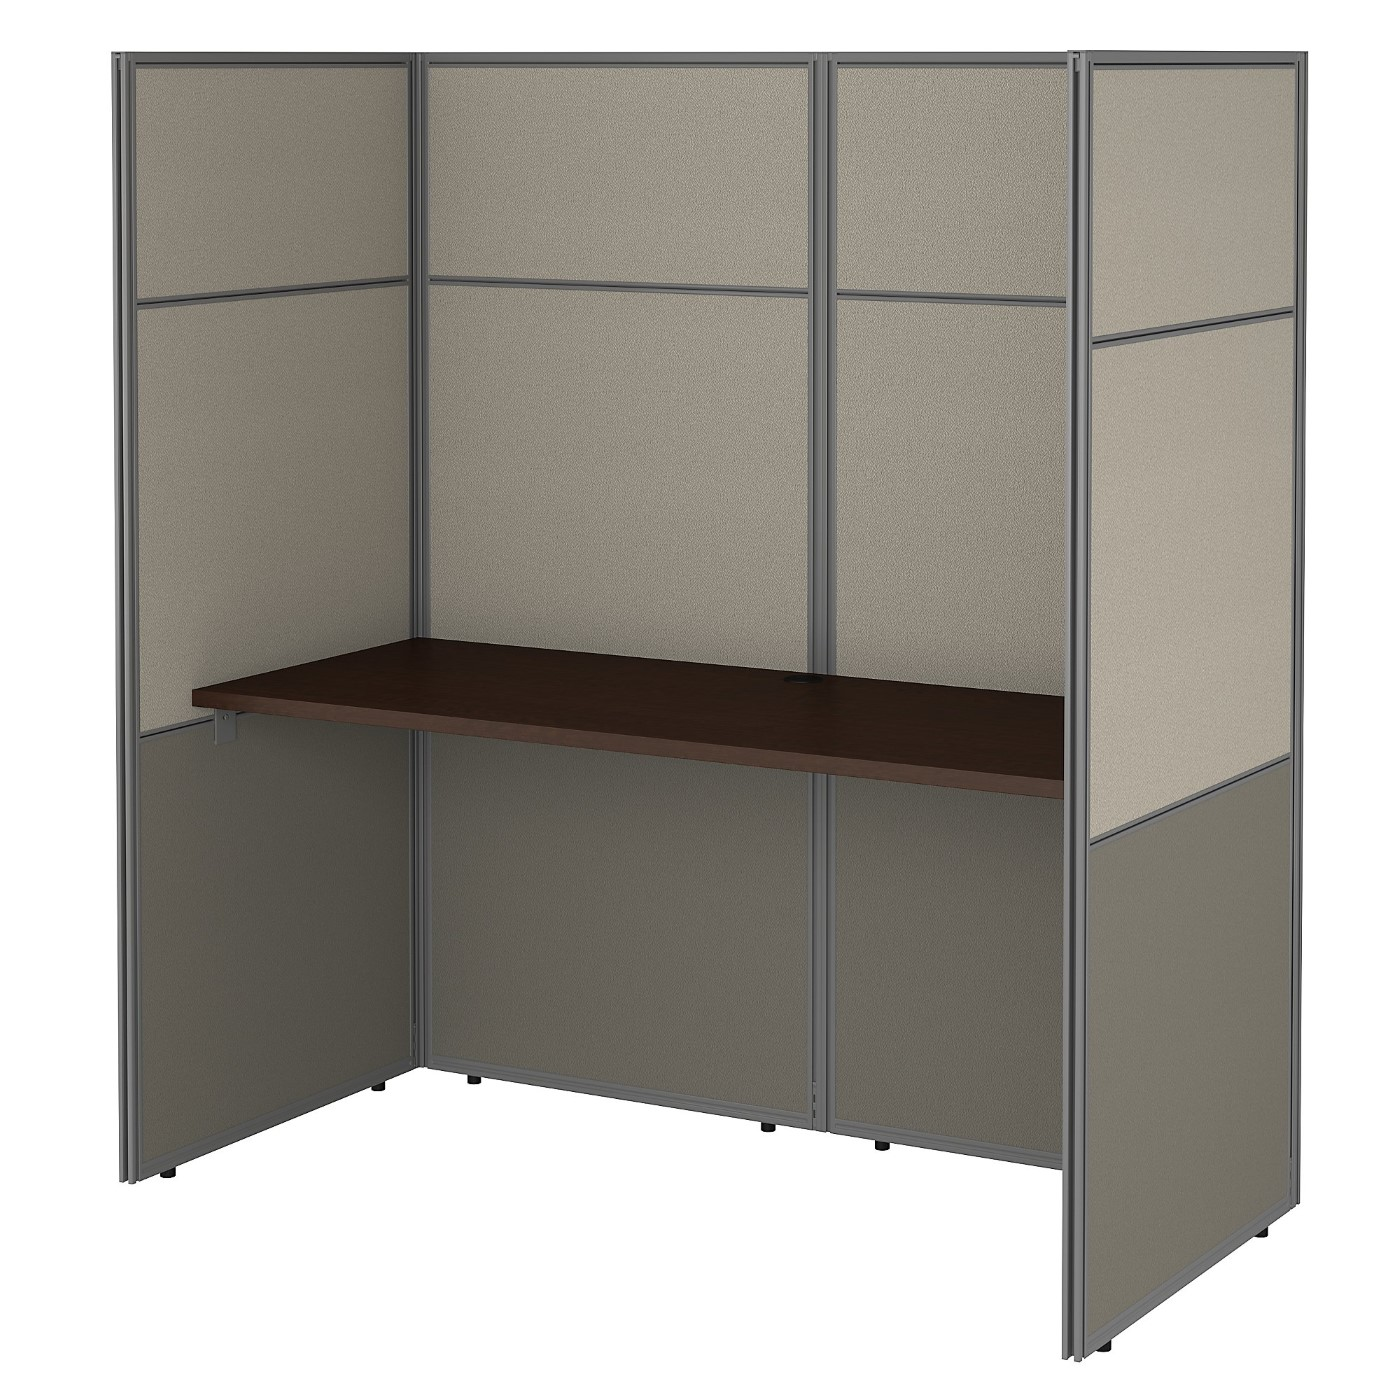 BUSH BUSINESS FURNITURE EASY OFFICE 60W CUBICLE DESK WORKSTATION WITH 66H CLOSED PANELS. FREE SHIPPING 30H x 72L x 72W.  SALE DEDUCT 10% MORE ENTER '10percent' IN COUPON CODE BOX WHILE CHECKING OUT. ENDS 5-31-20.